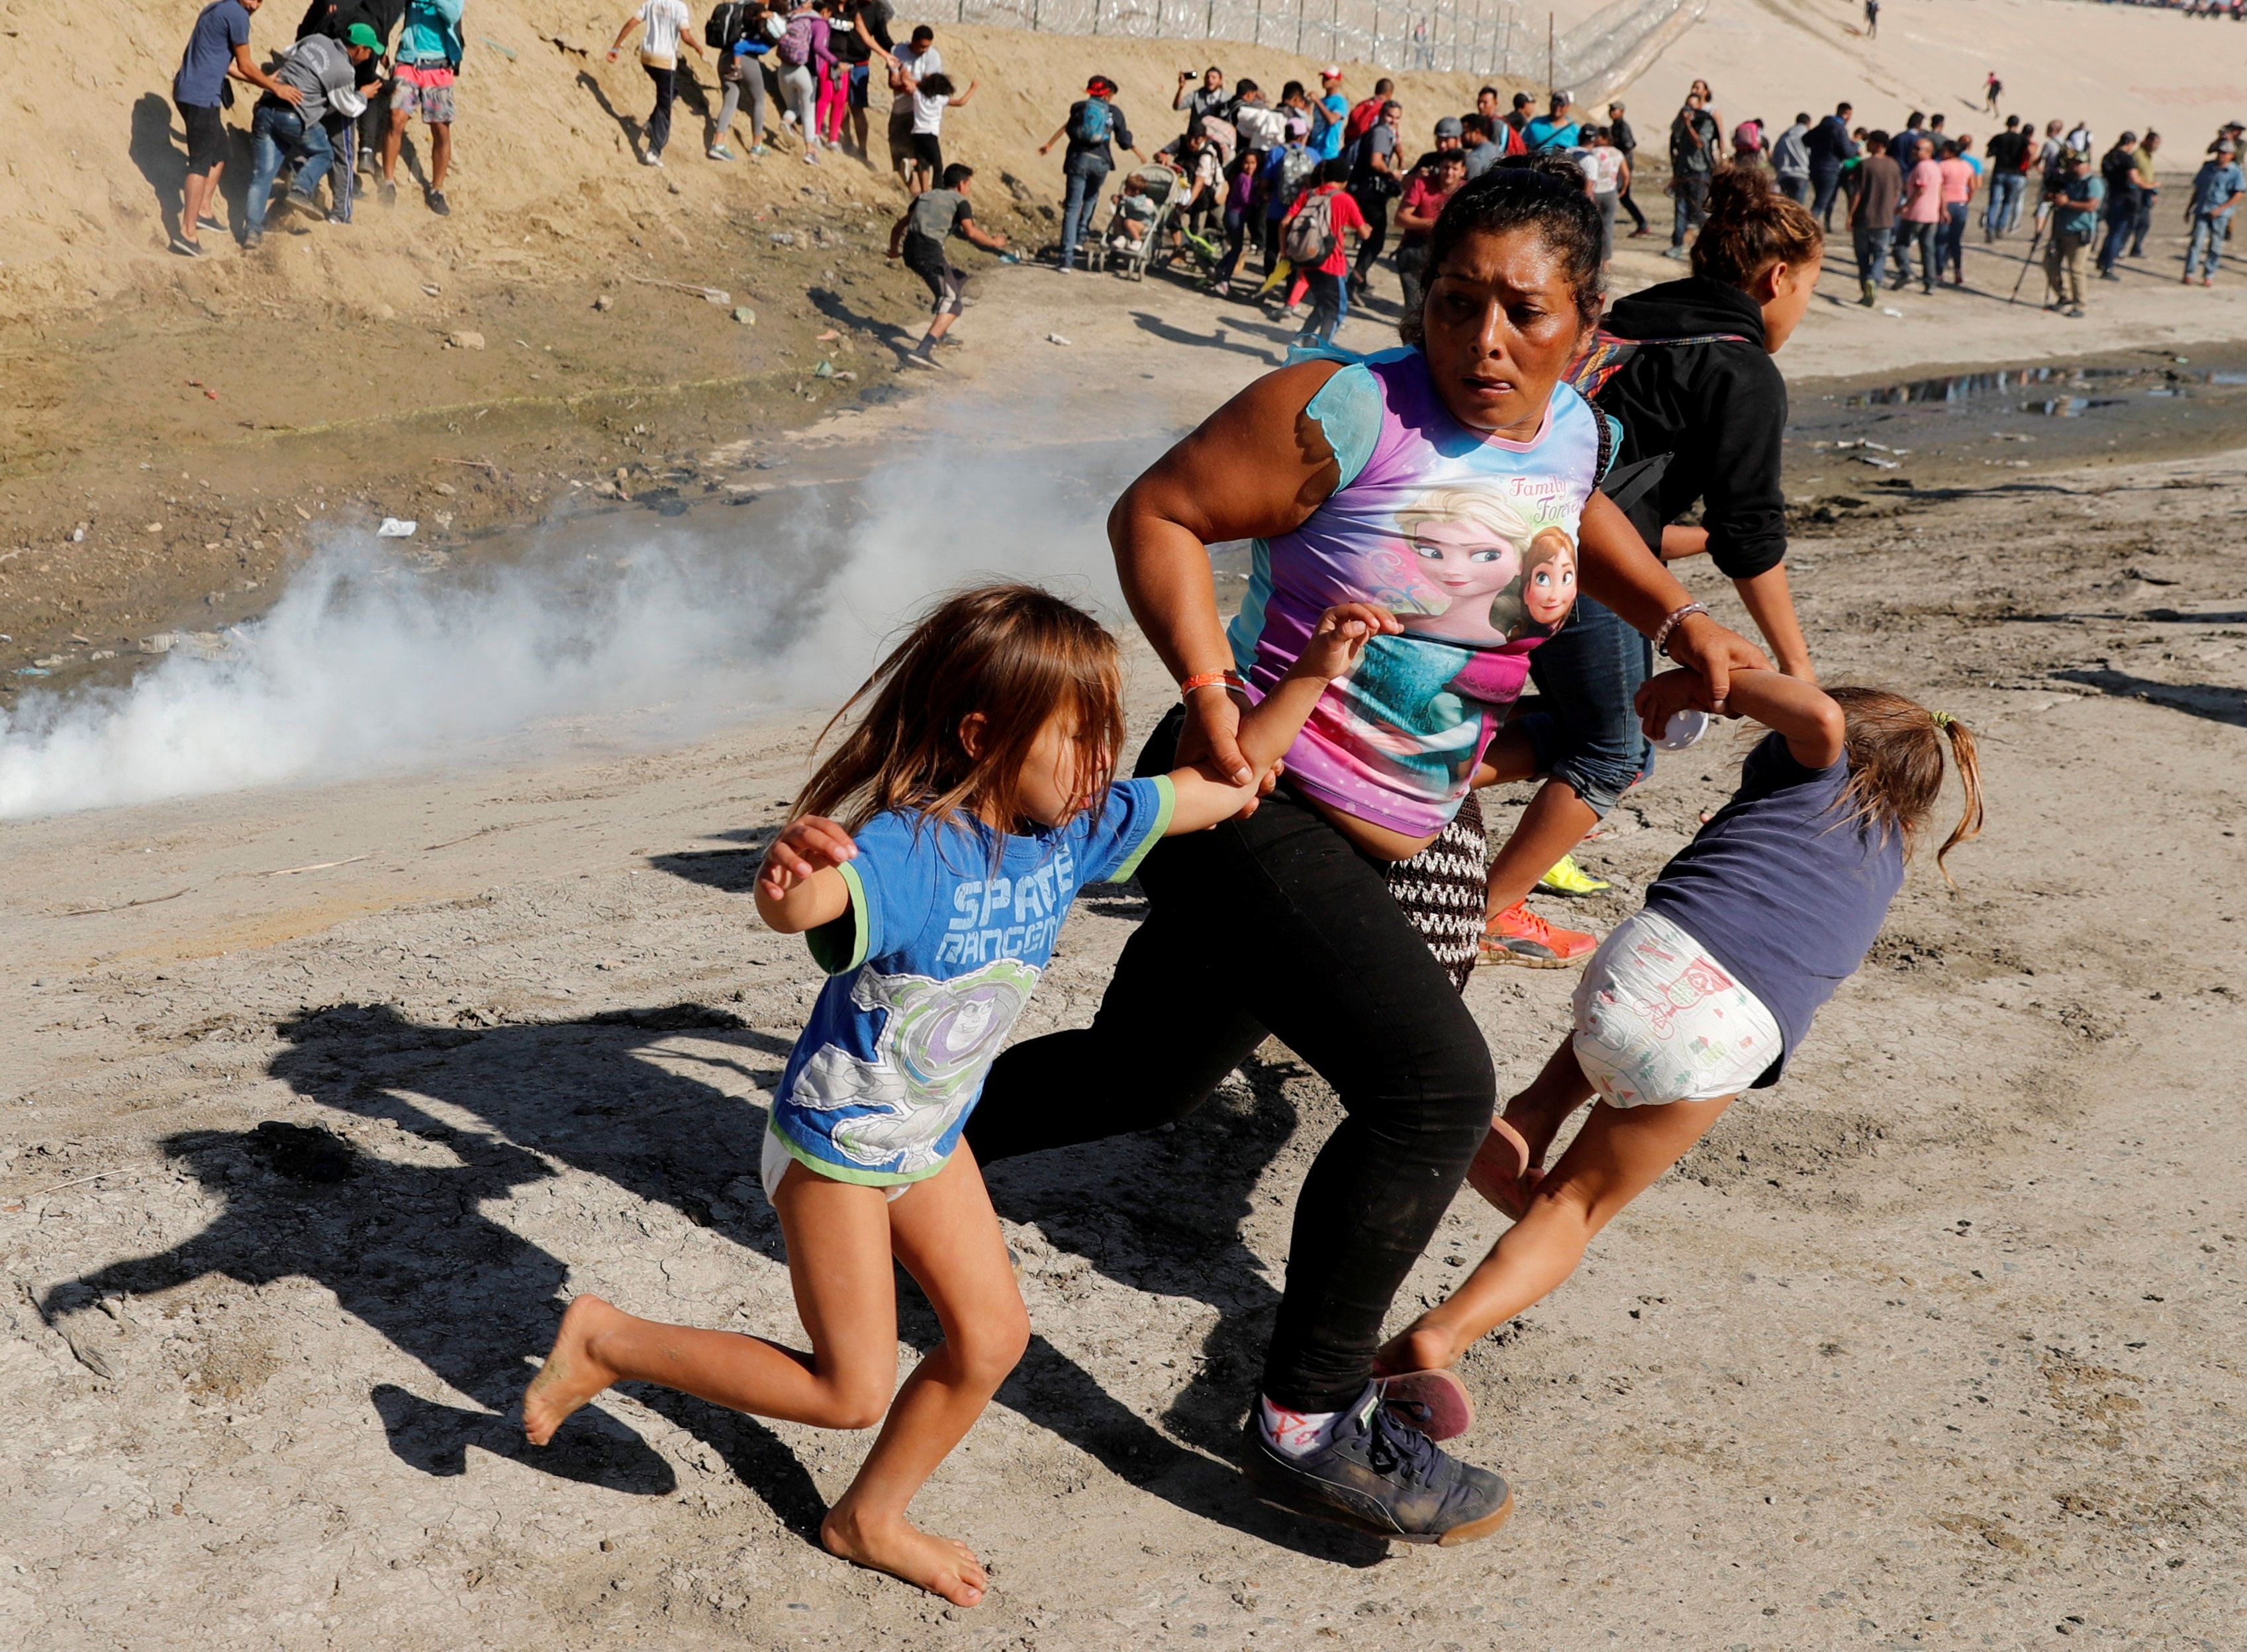 Christians Decry Trump Administration After Children Are Tear-Gassed At